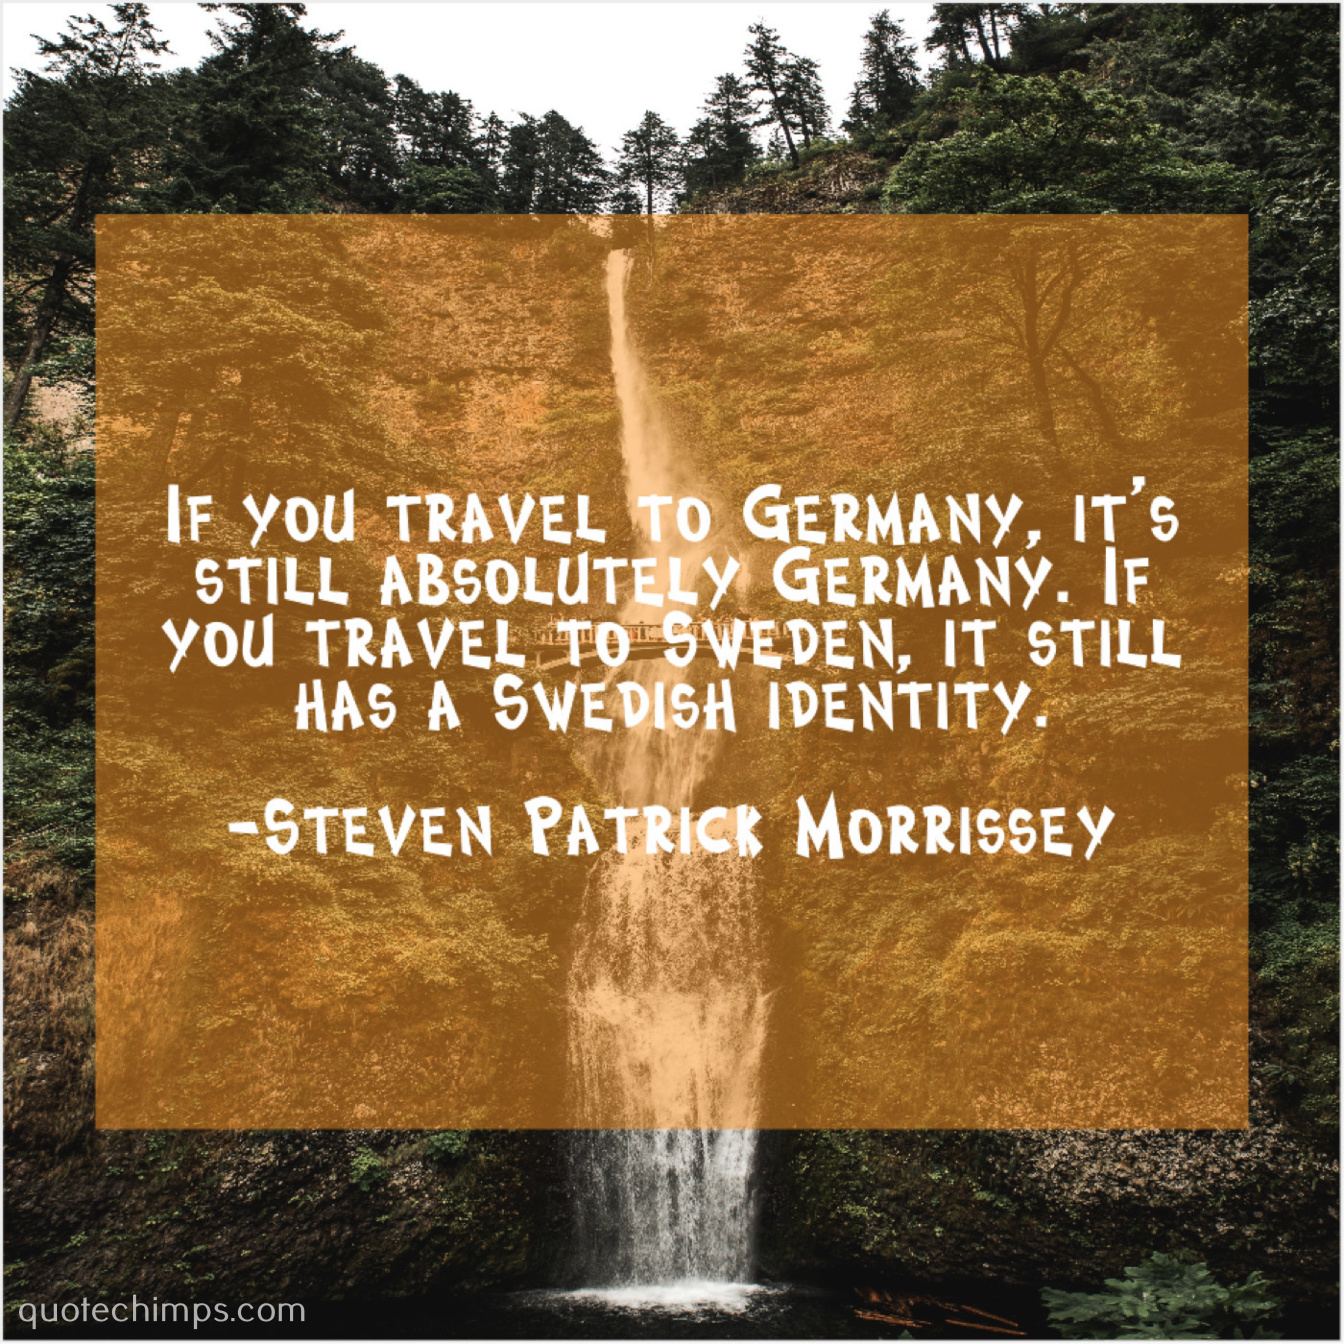 Steven Patrick Morrissey If You Travel To Germany